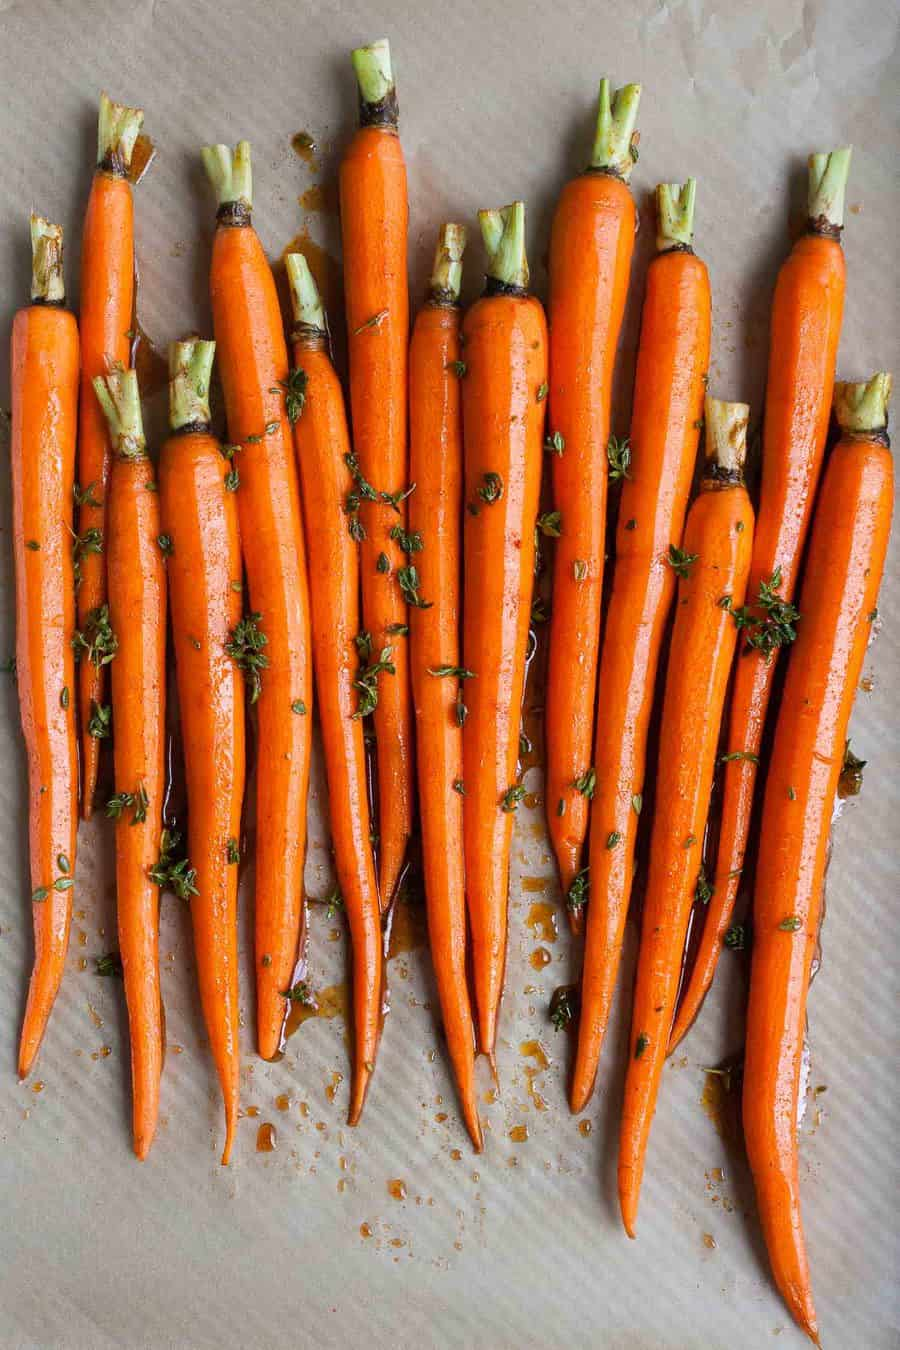 Carrots being roasted on a baking sheet